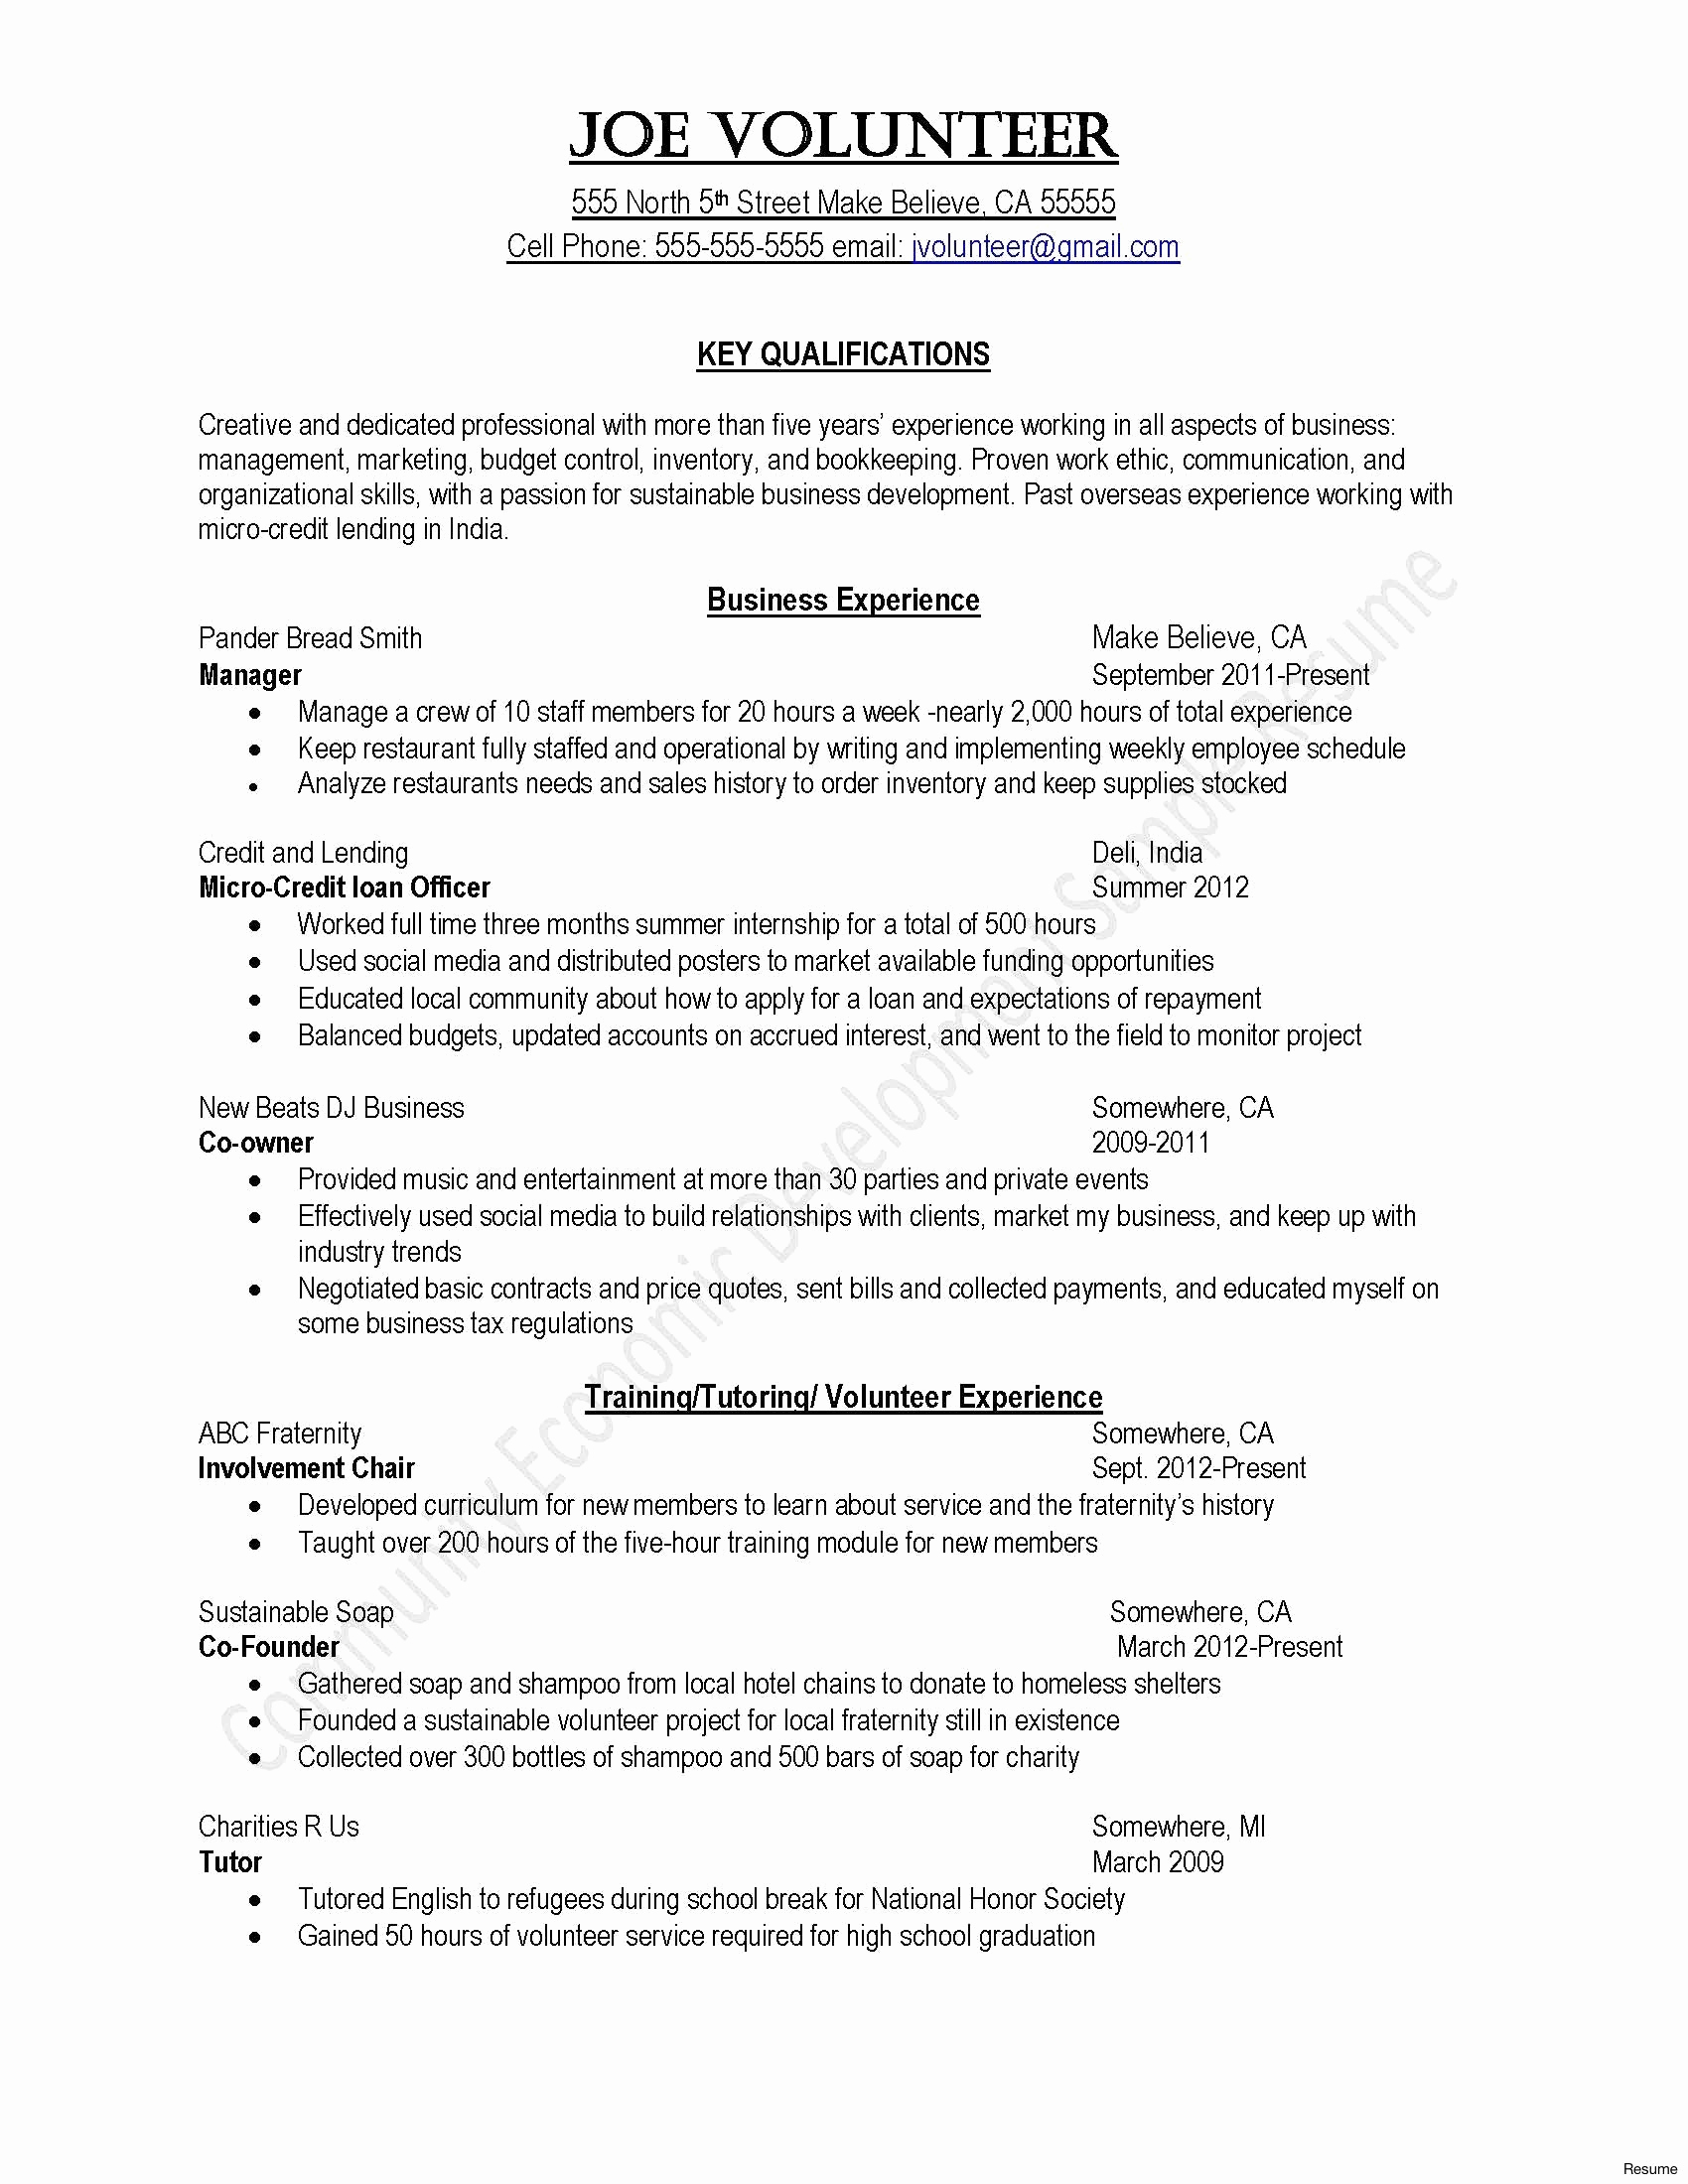 upwork cover letter template Collection-Cover Letter Template for Resume Unique Od Specialist Sample Resume Resume for Graphic Designer Sample 4-o